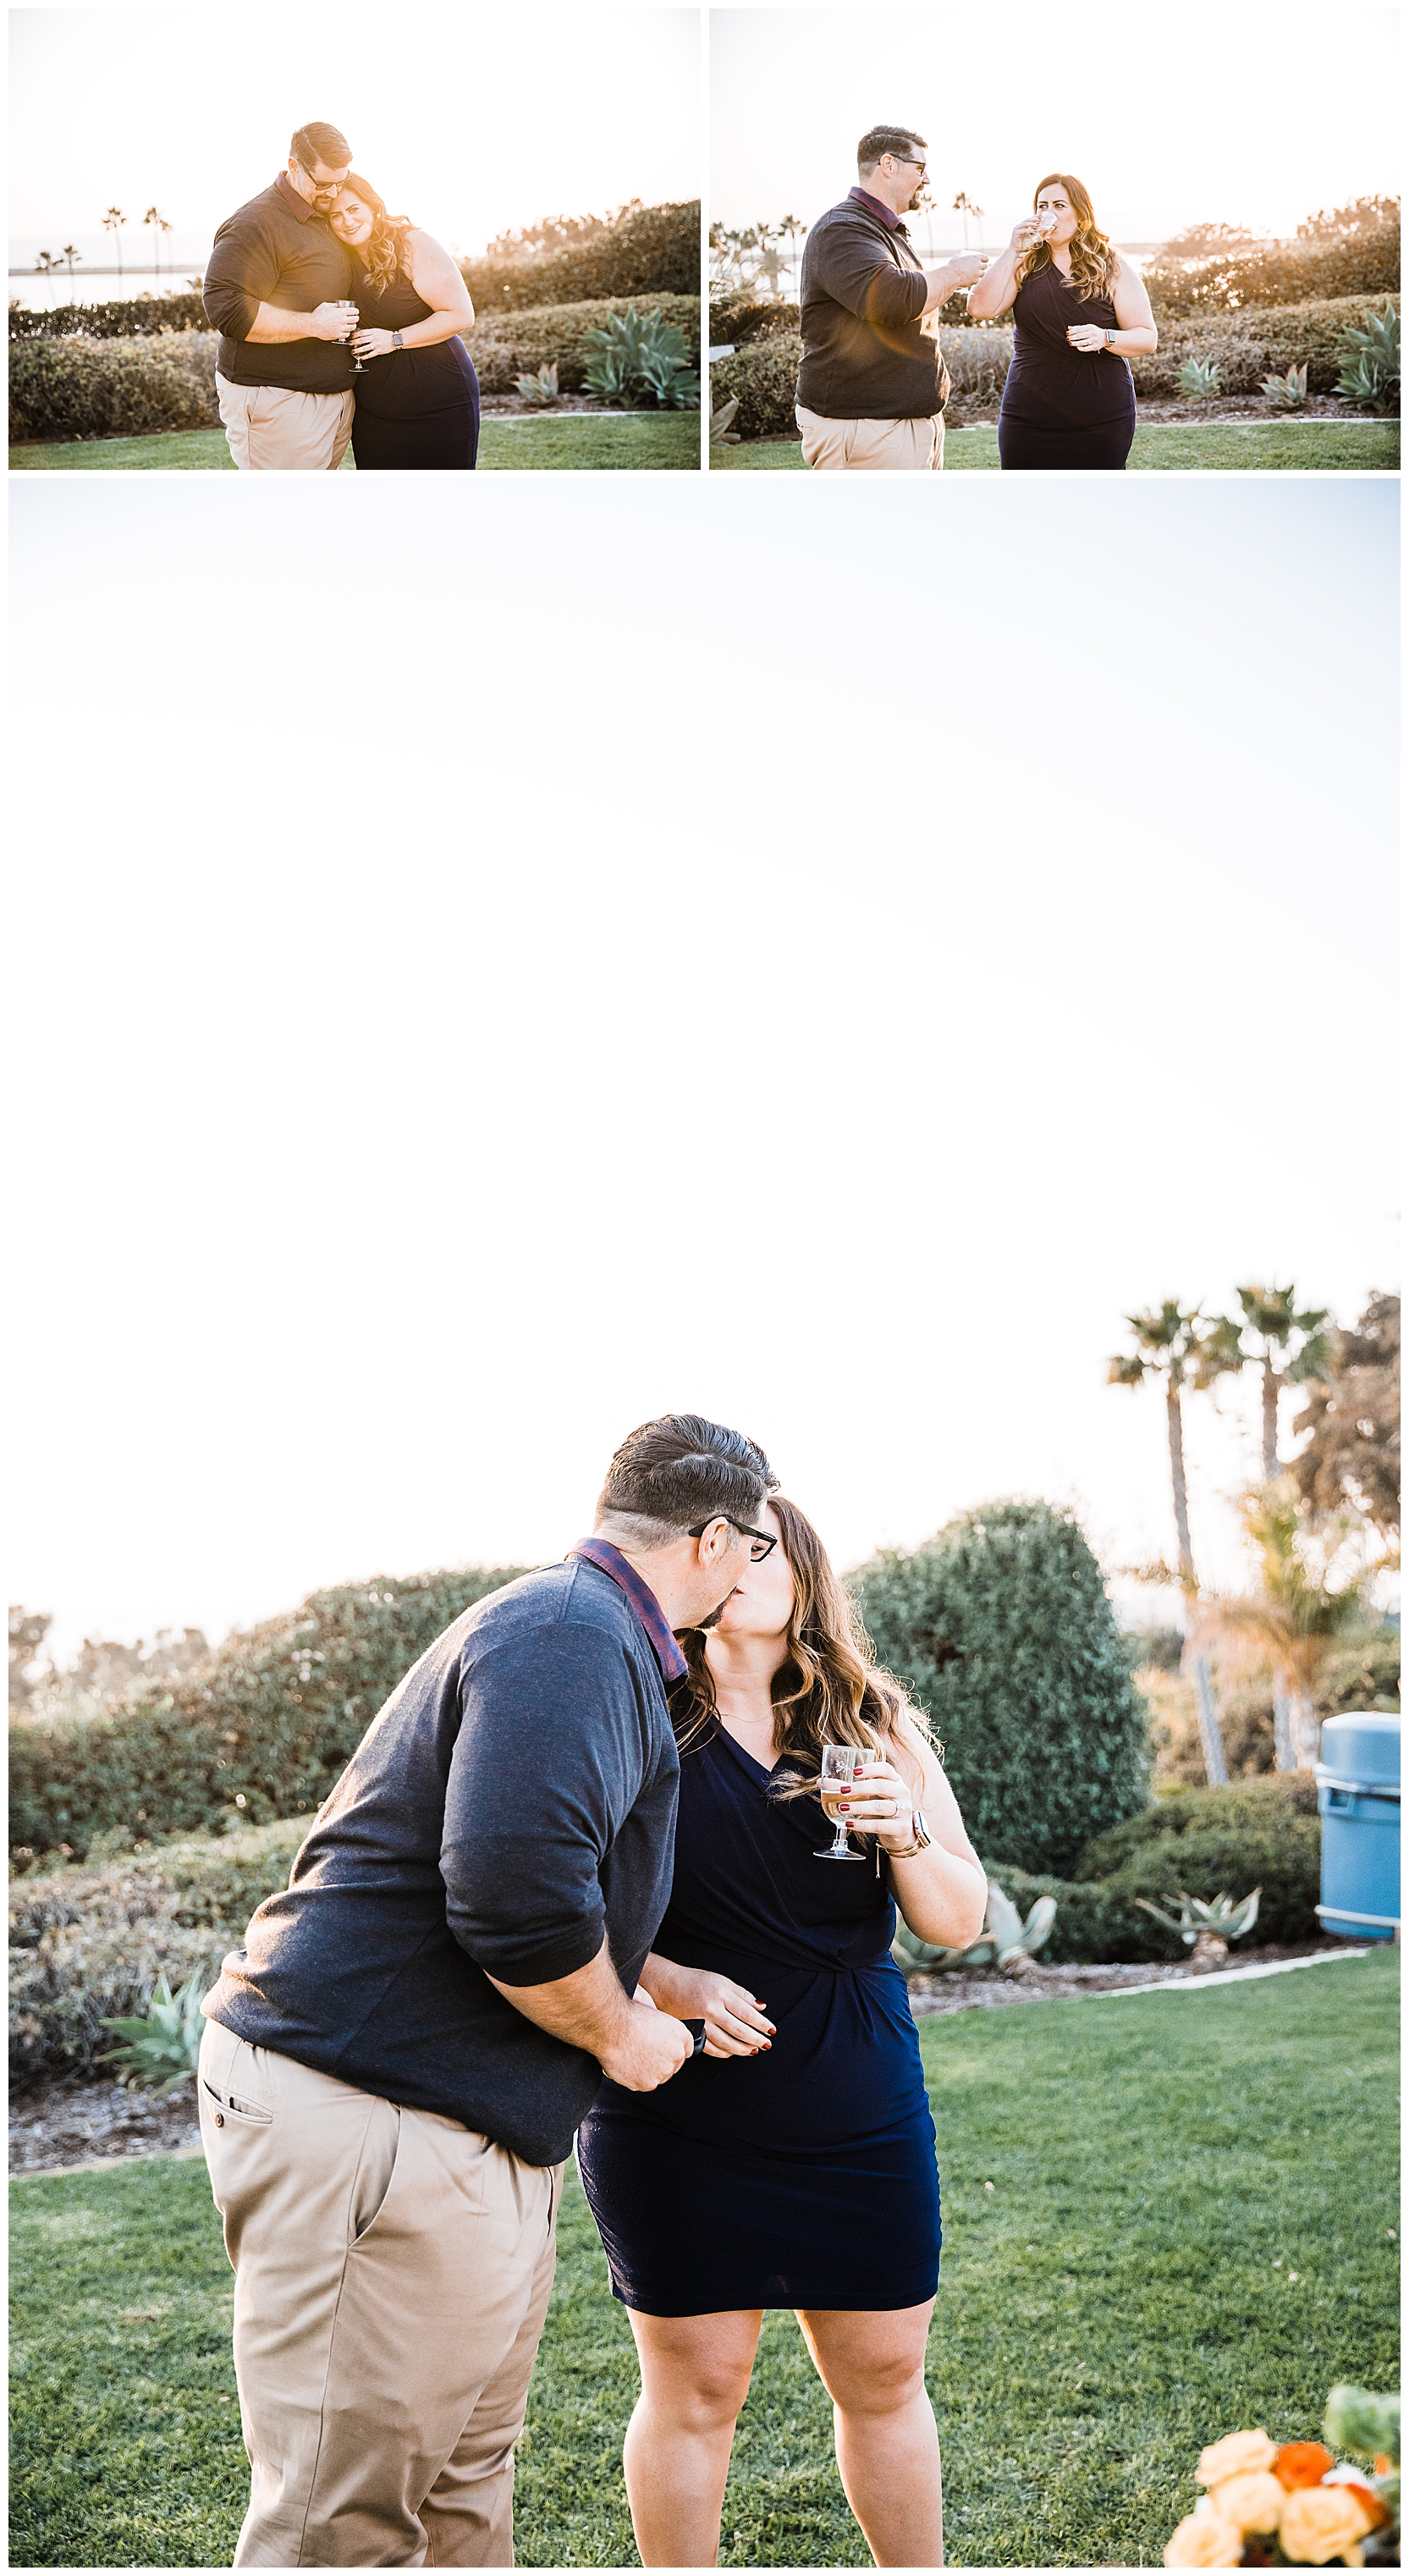 jessicafredericks_huntingtonbeach_proposal_sunset_engagement_0019.jpg